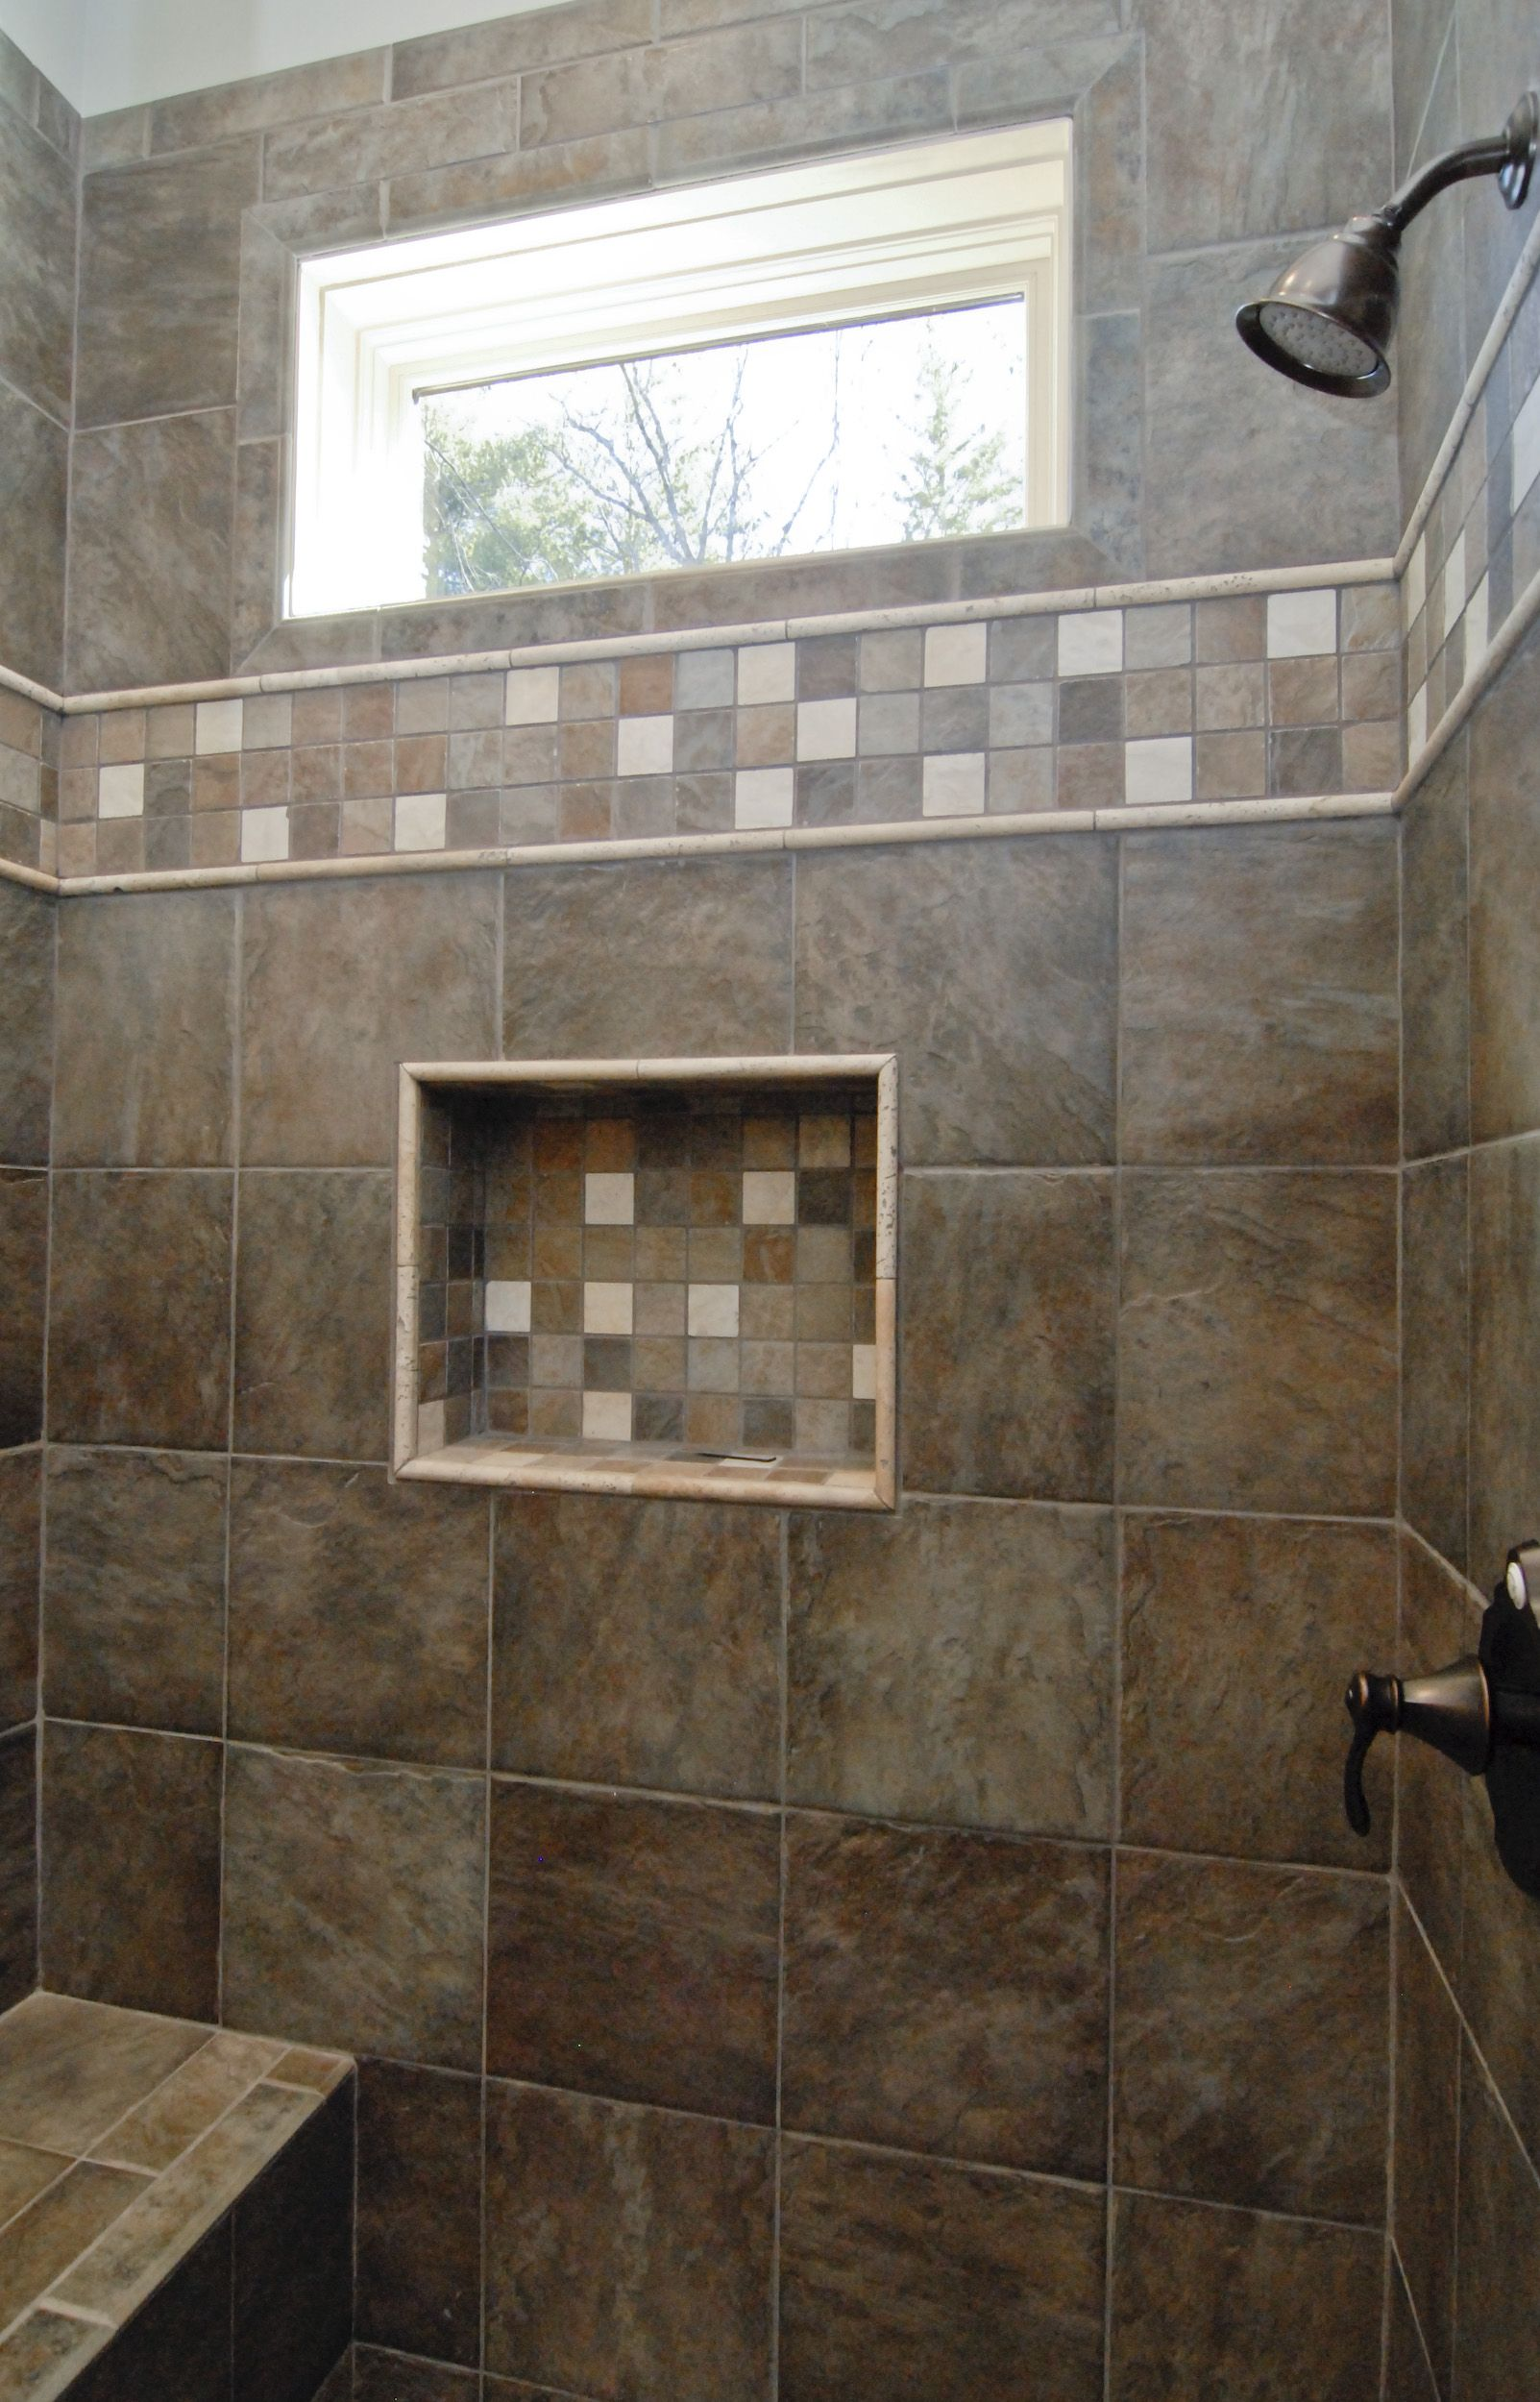 Gorgeous Dark Brown Custom Tile Walk In Shower With A Window And Bench Www Goodwinfoust Com Tile Walk In Shower Small Bathroom With Shower Shower Remodel